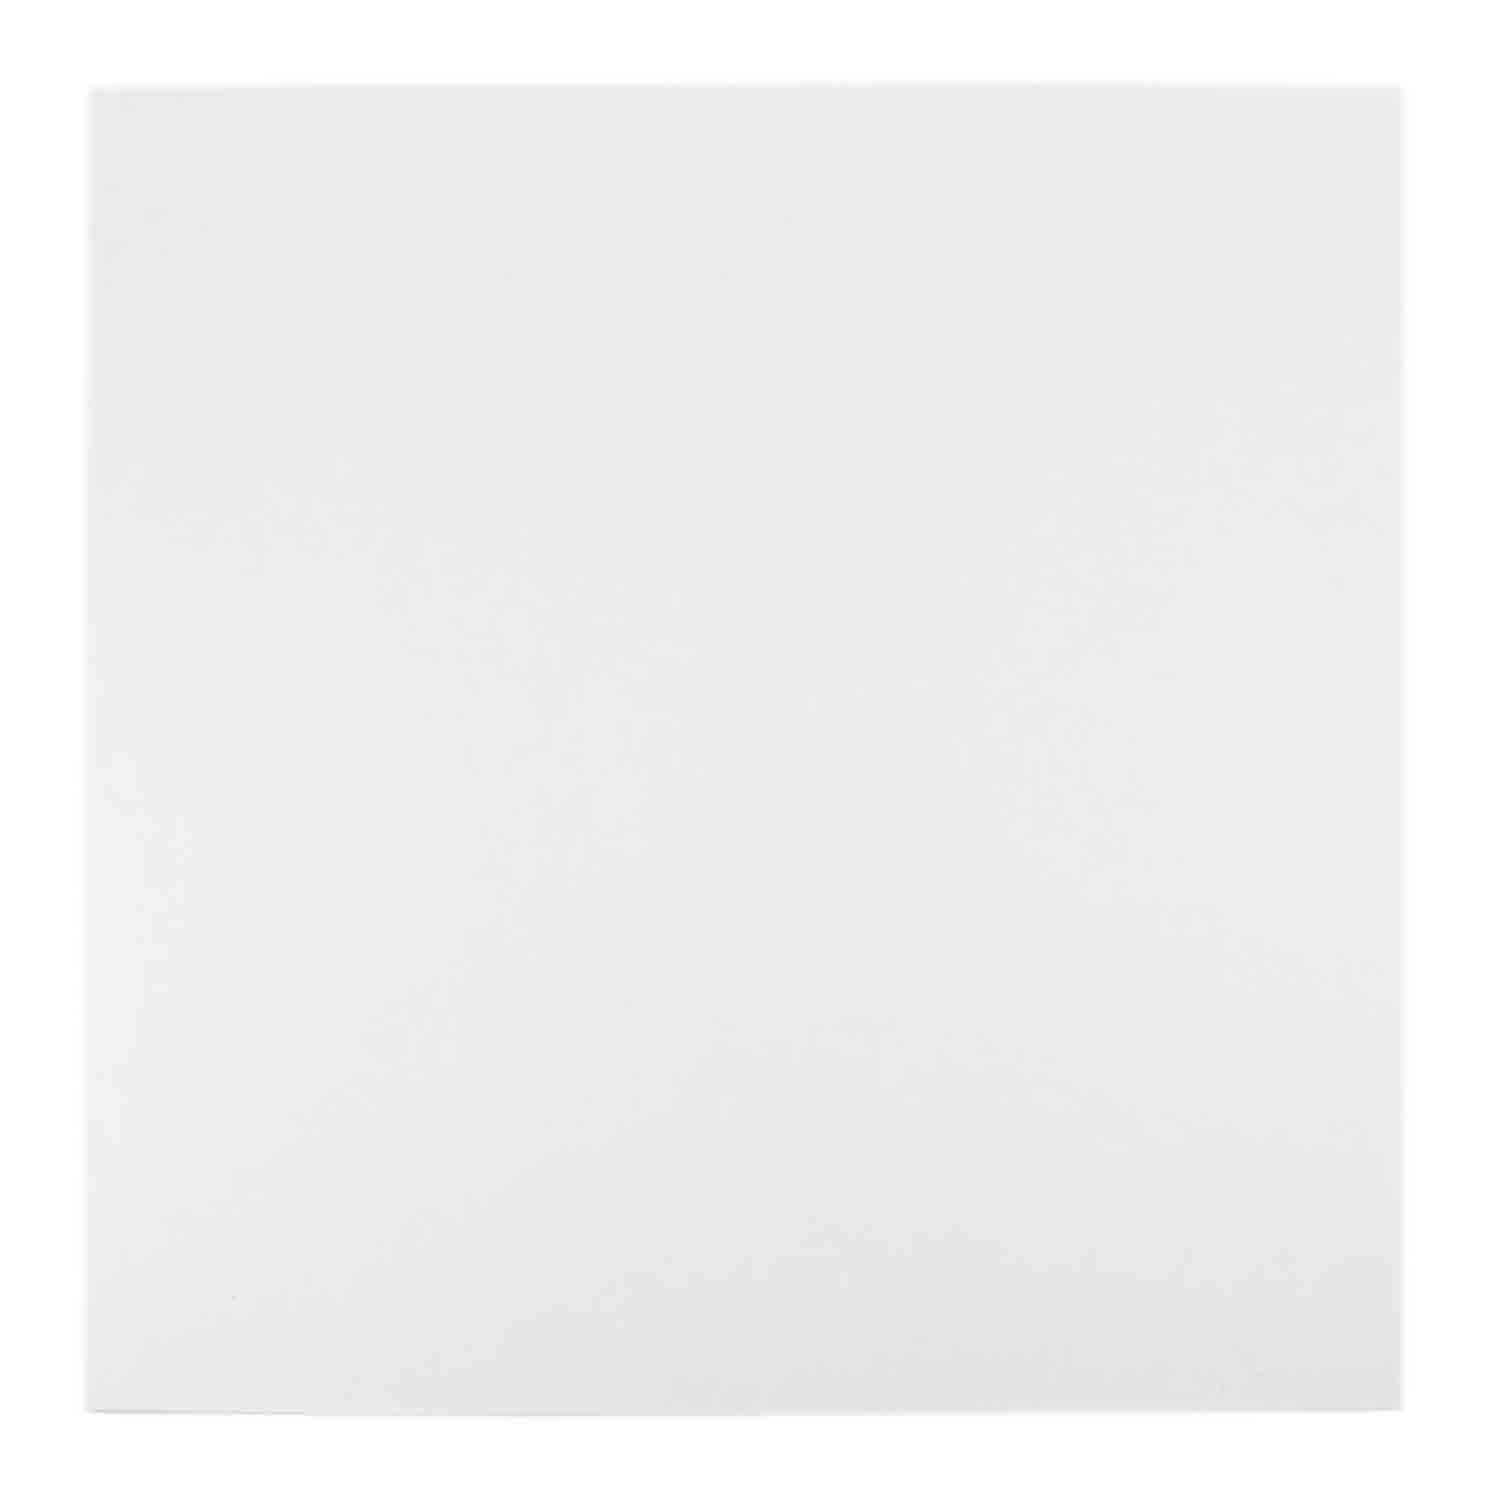 "8"" Square White Foil Sturdy Board"